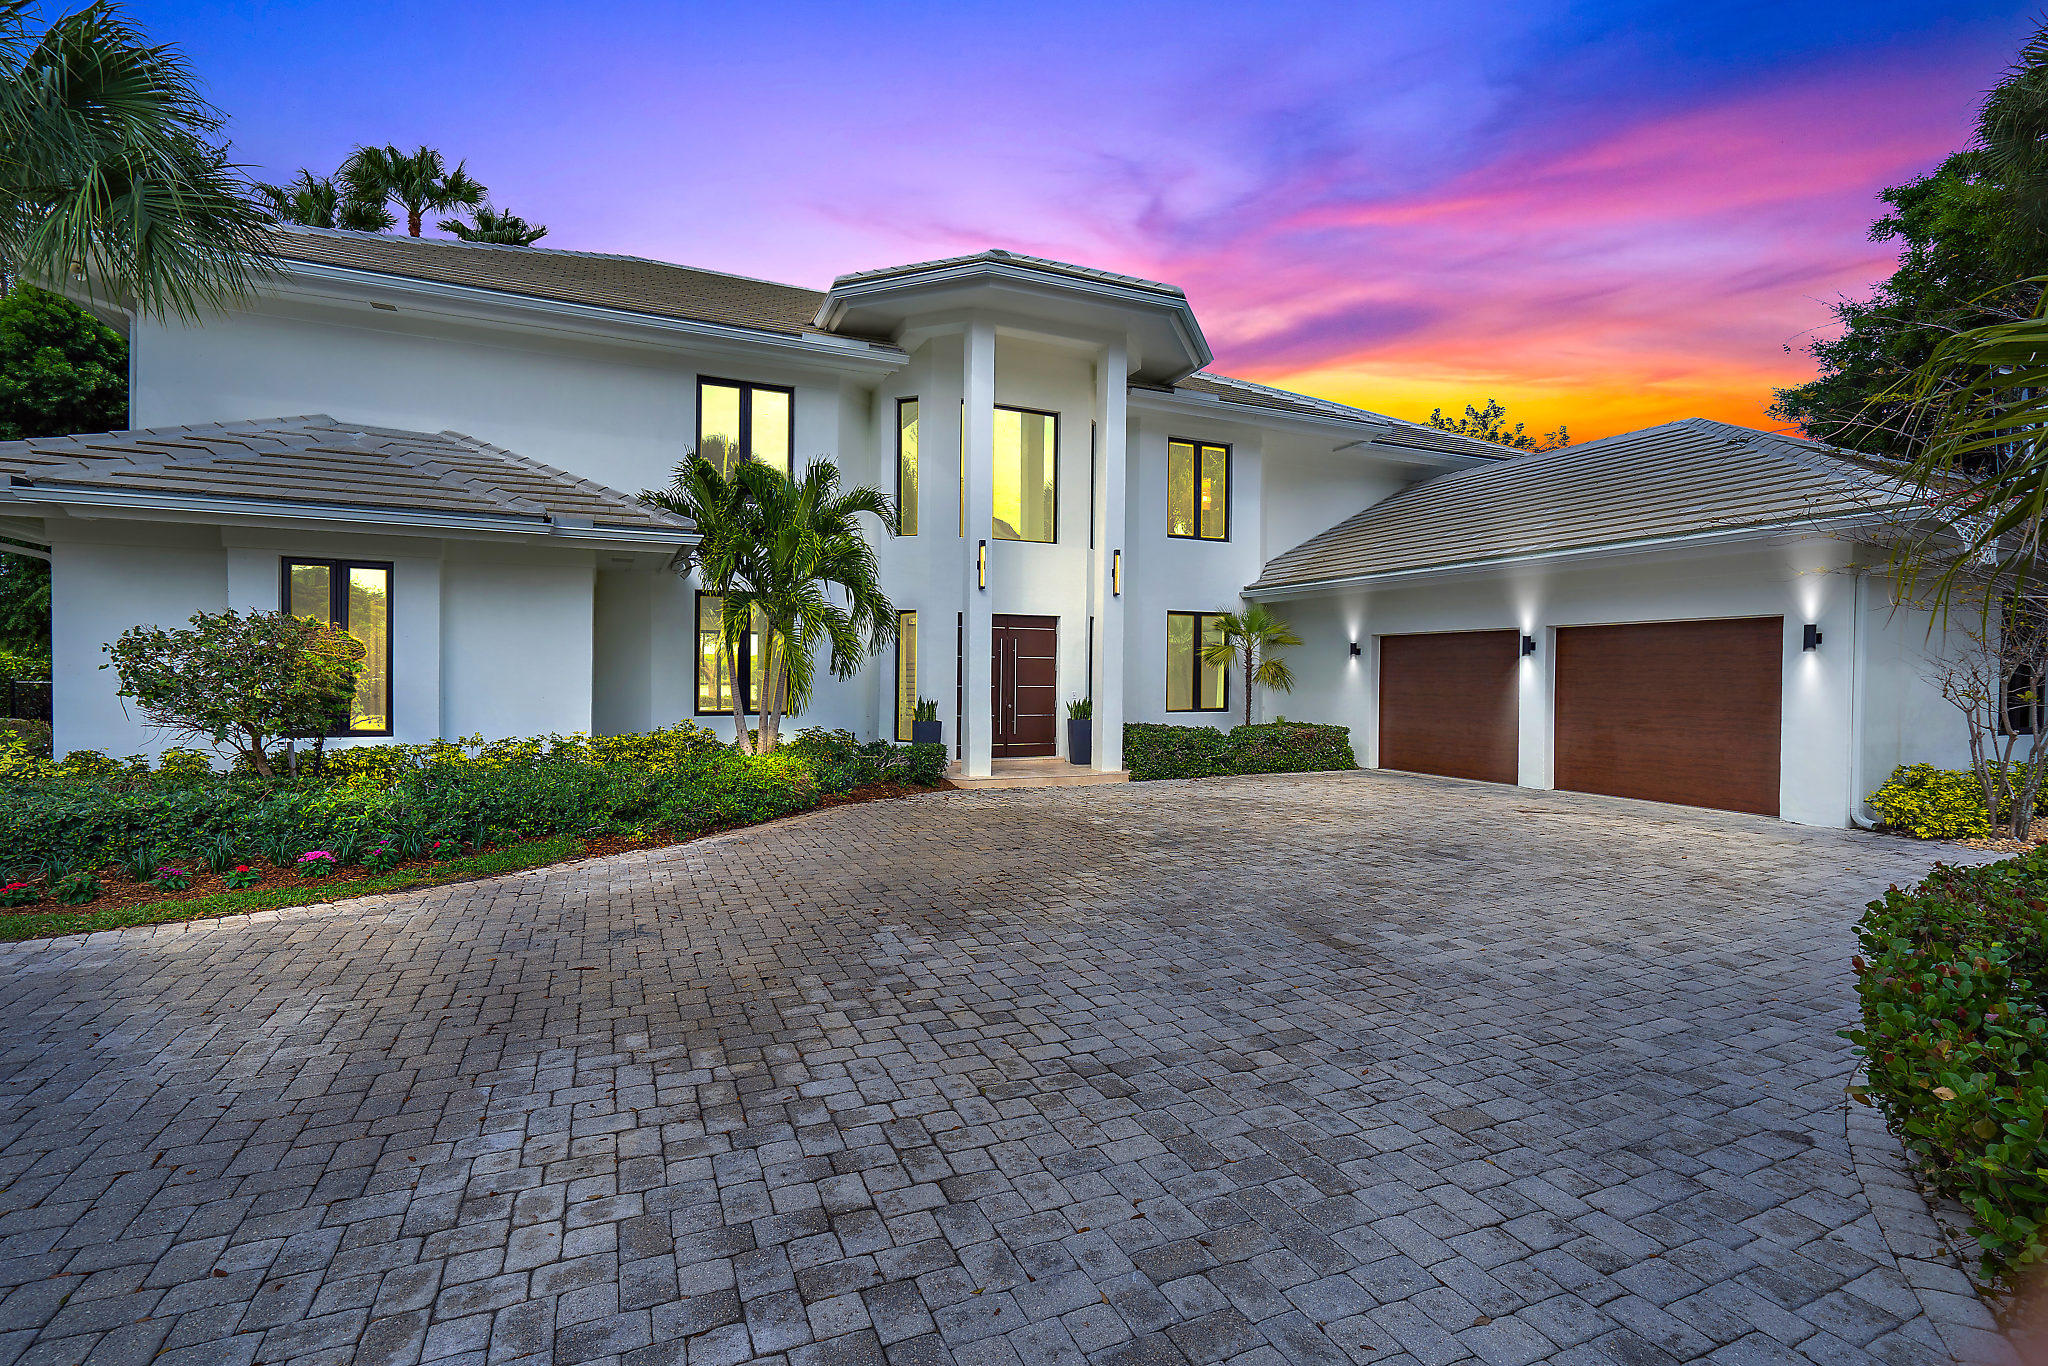 8818 SE Riverfront Terrace, one of homes for sale in Tequesta